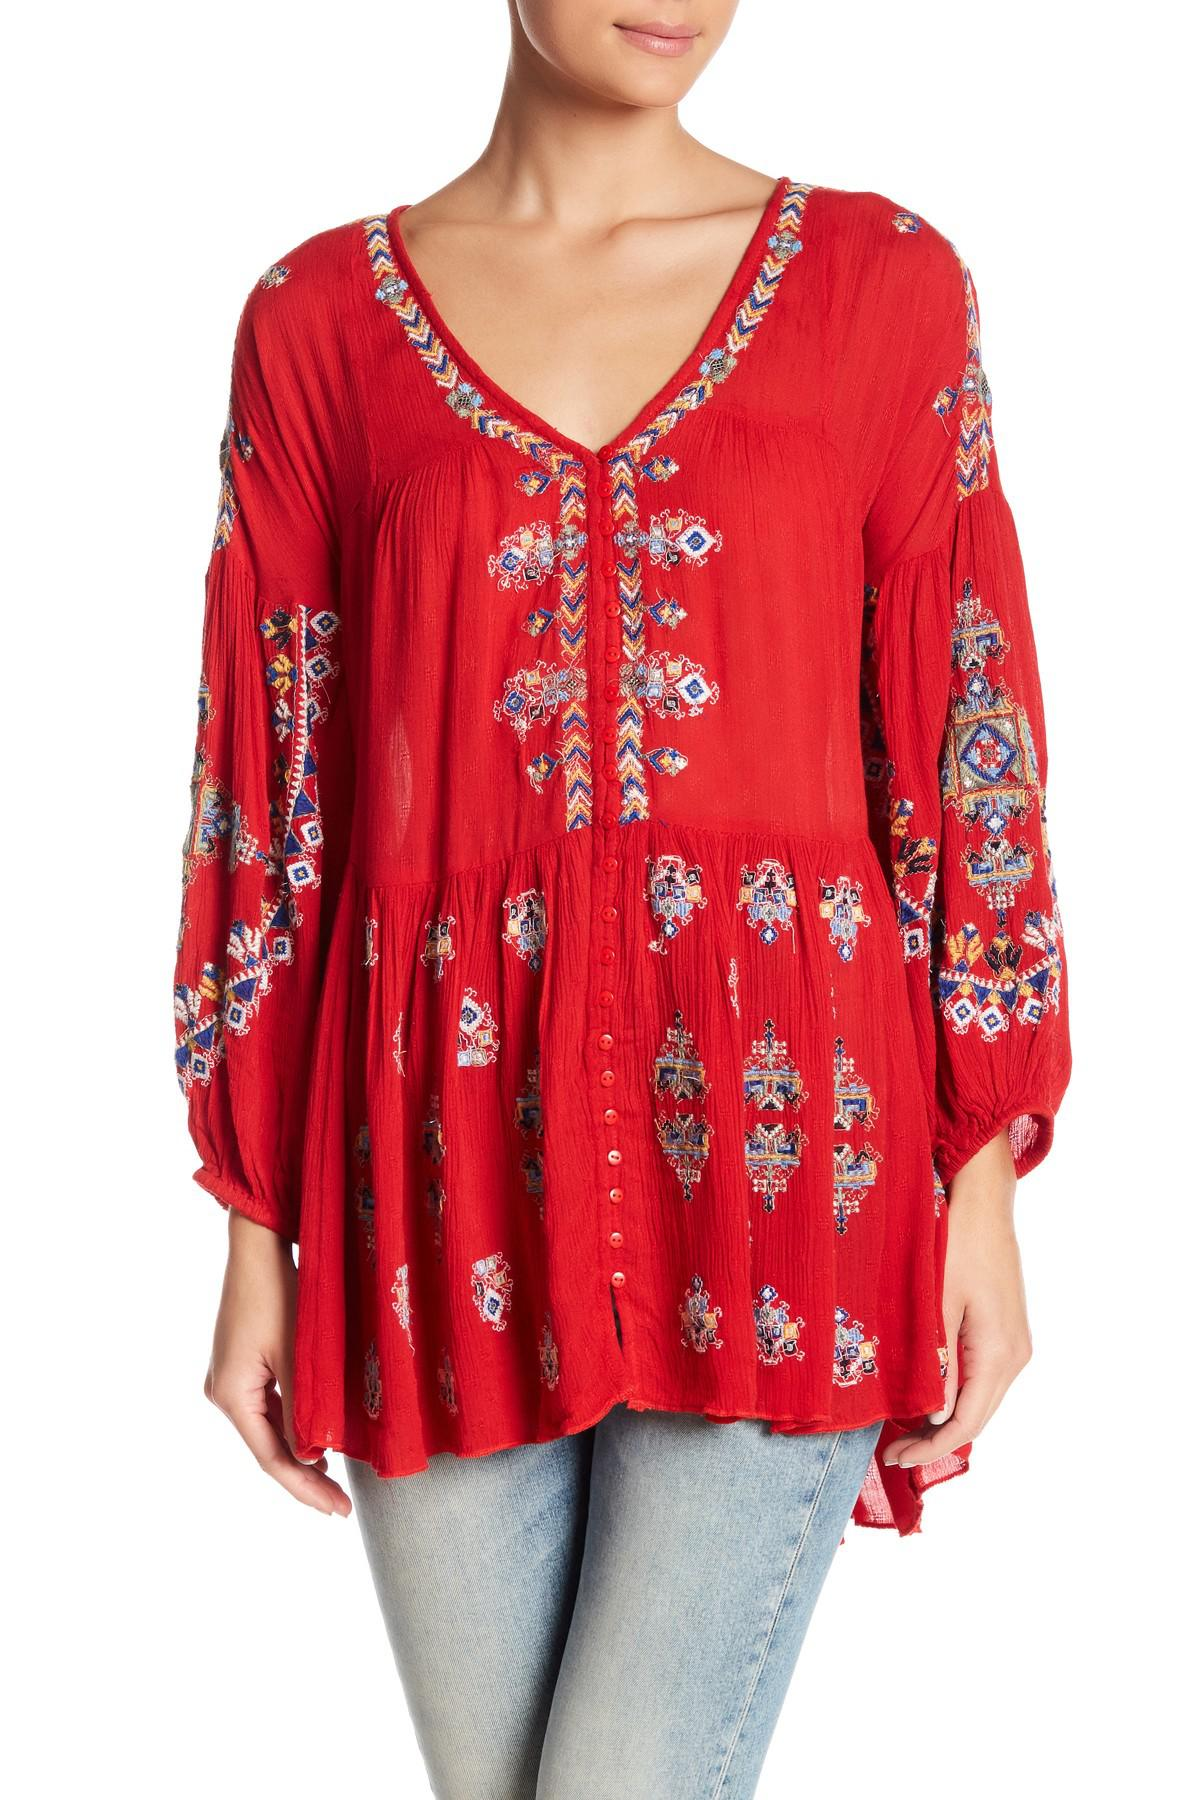 47f2c49e329 Free People Arianna Tunic in Red - Lyst